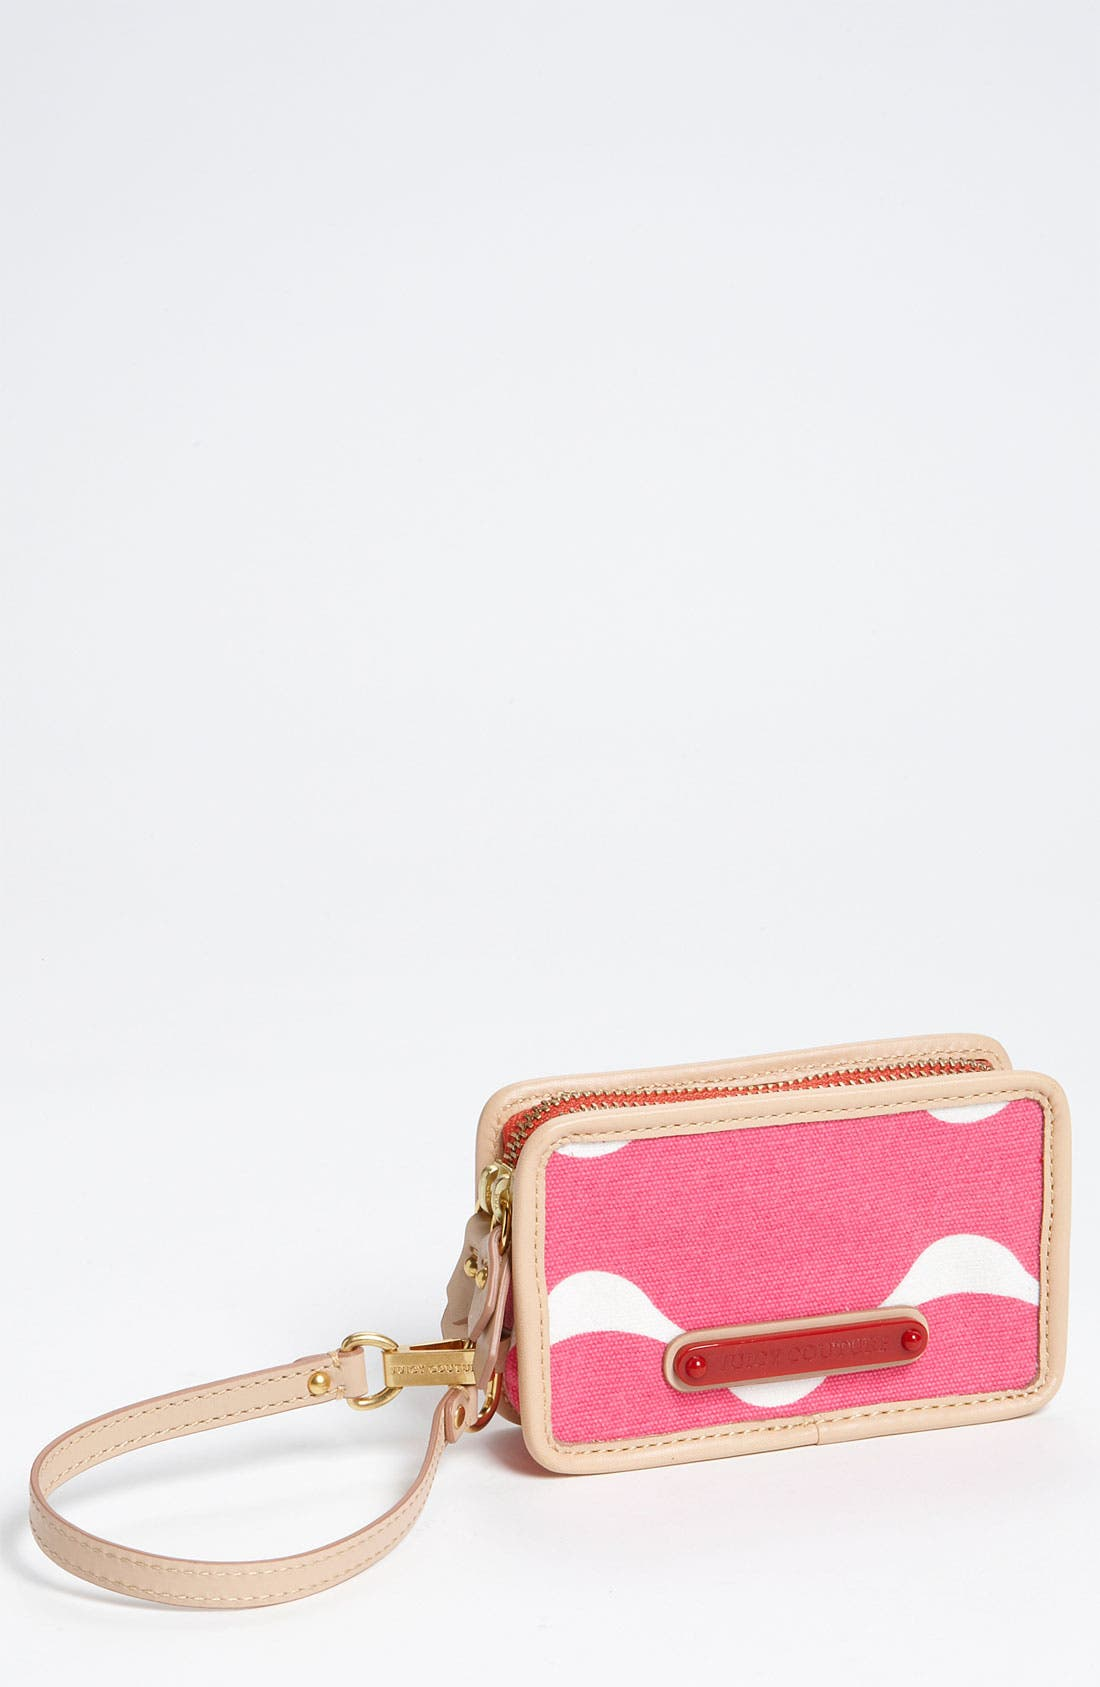 Main Image - Juicy Couture 'Crazy for Couture' Canvas Phone Wristlet